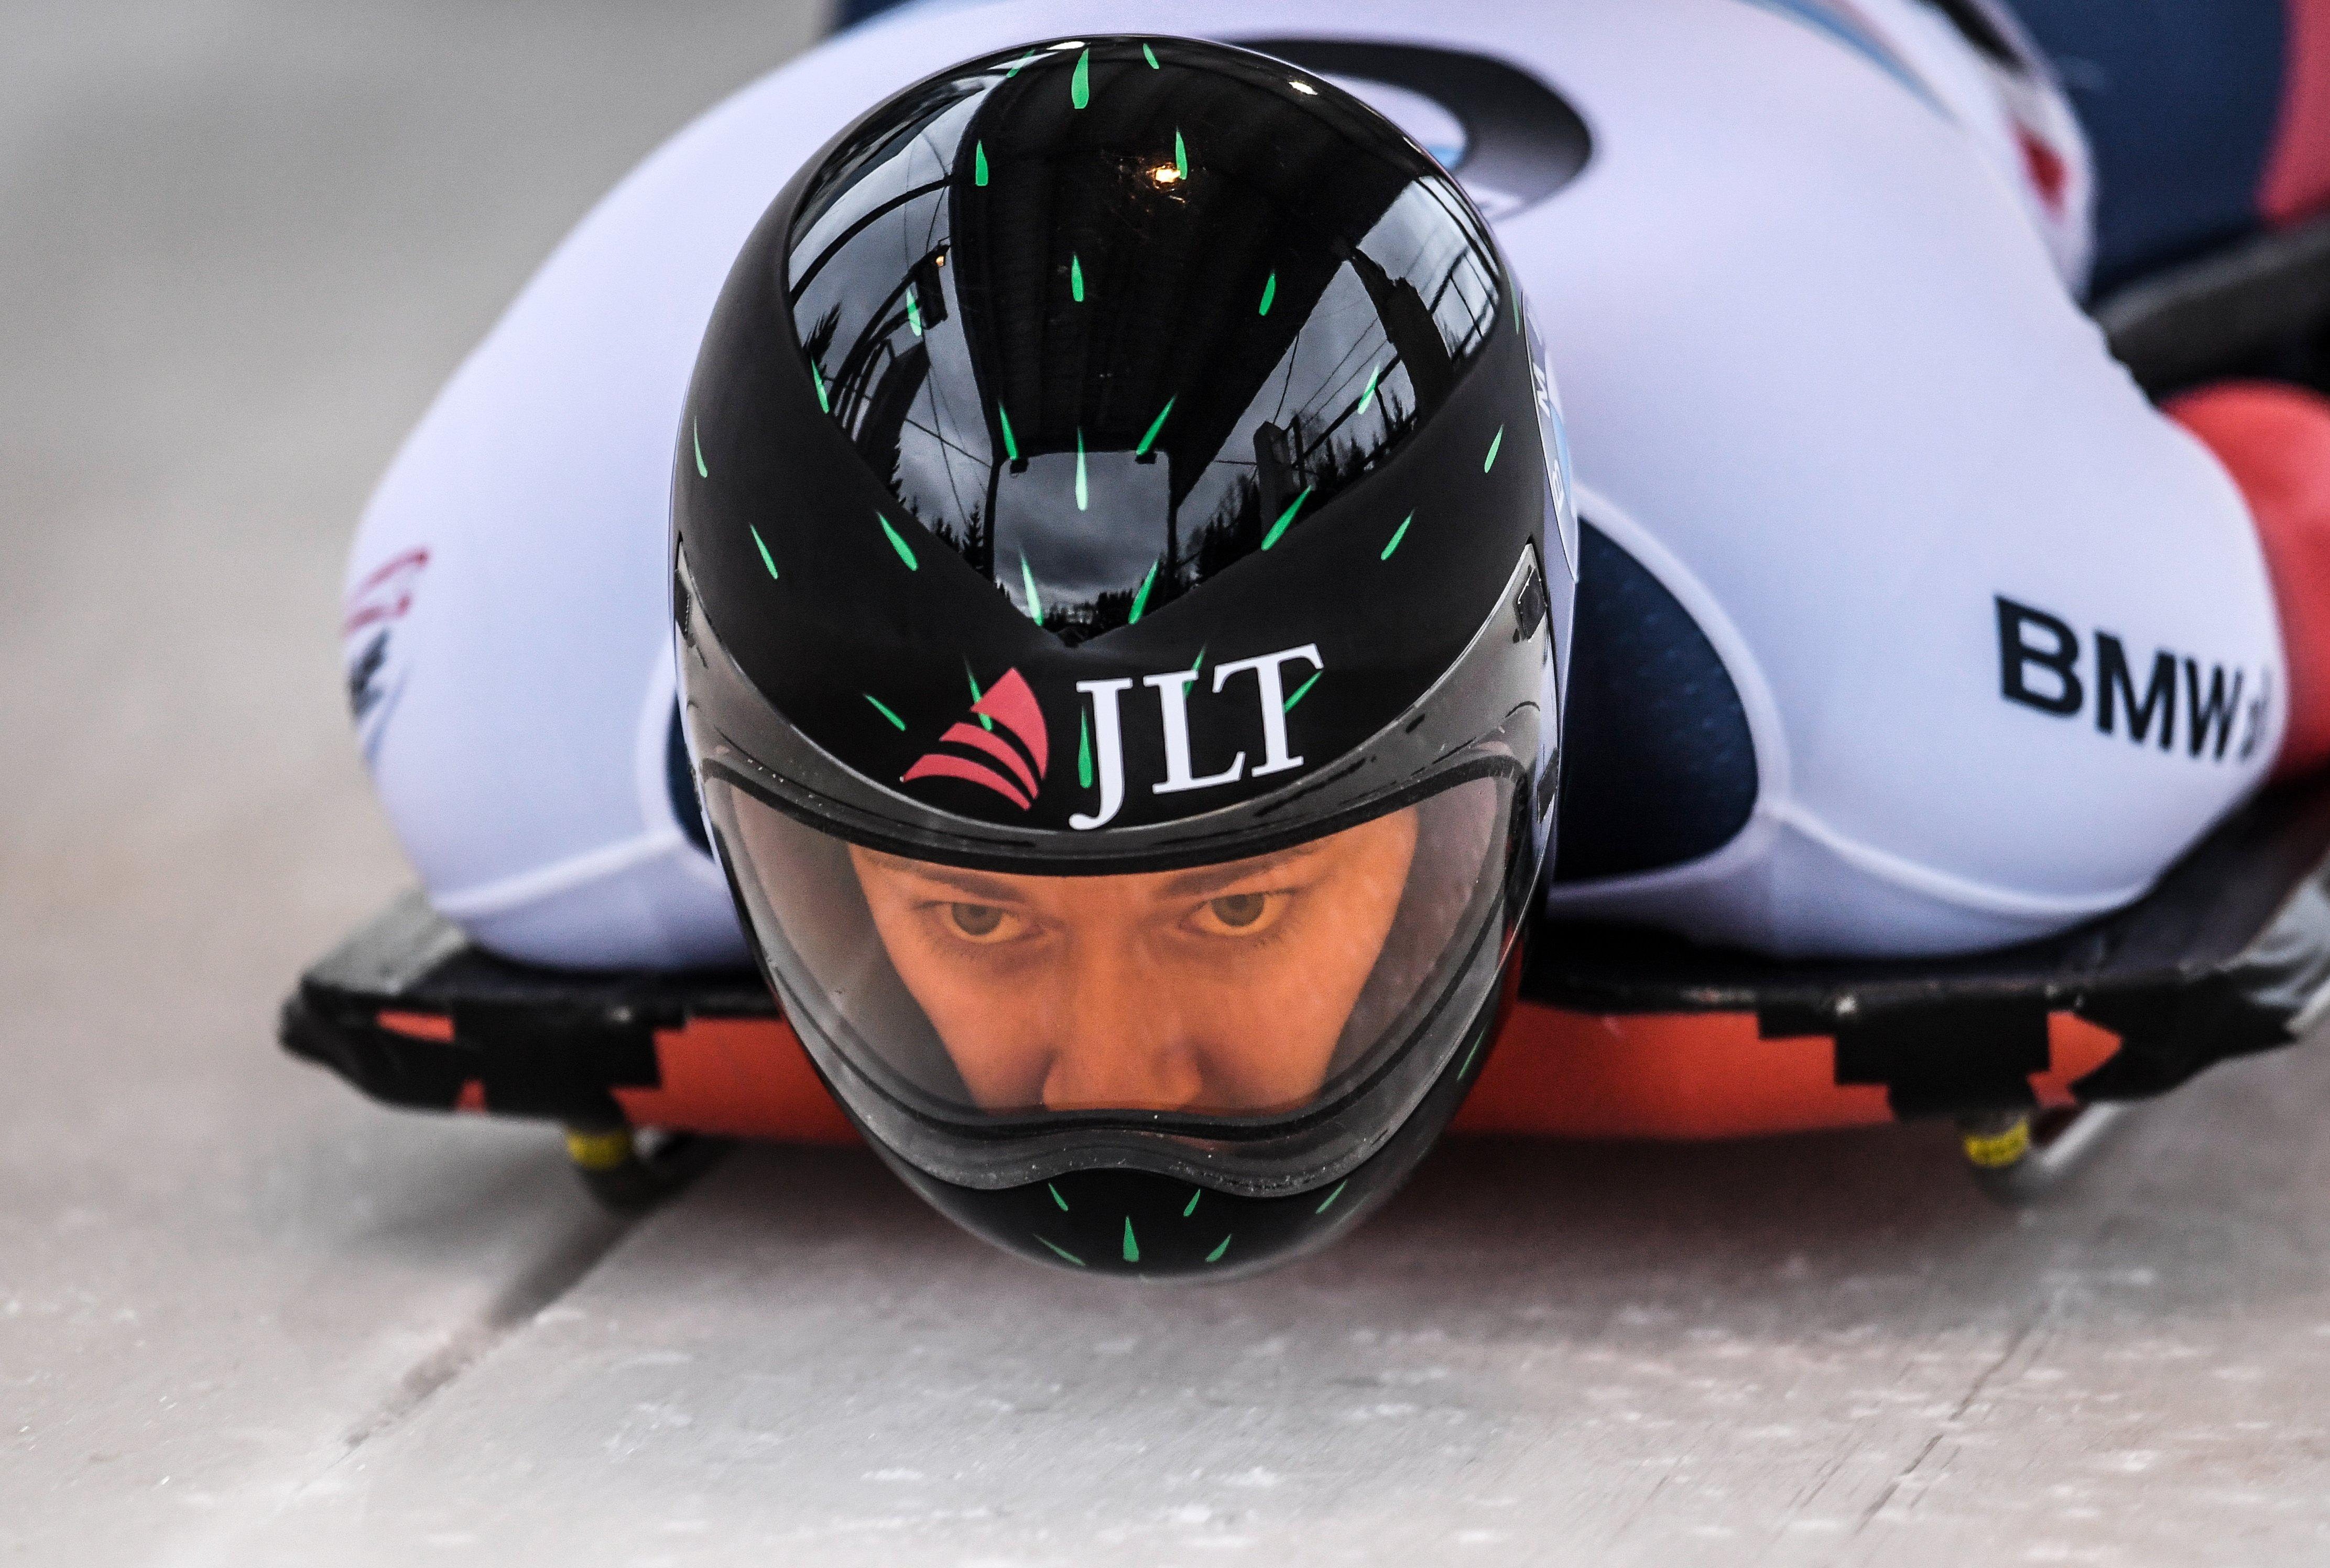 Lizzy Yarnold has struggled in the run-up to the 2018 Games